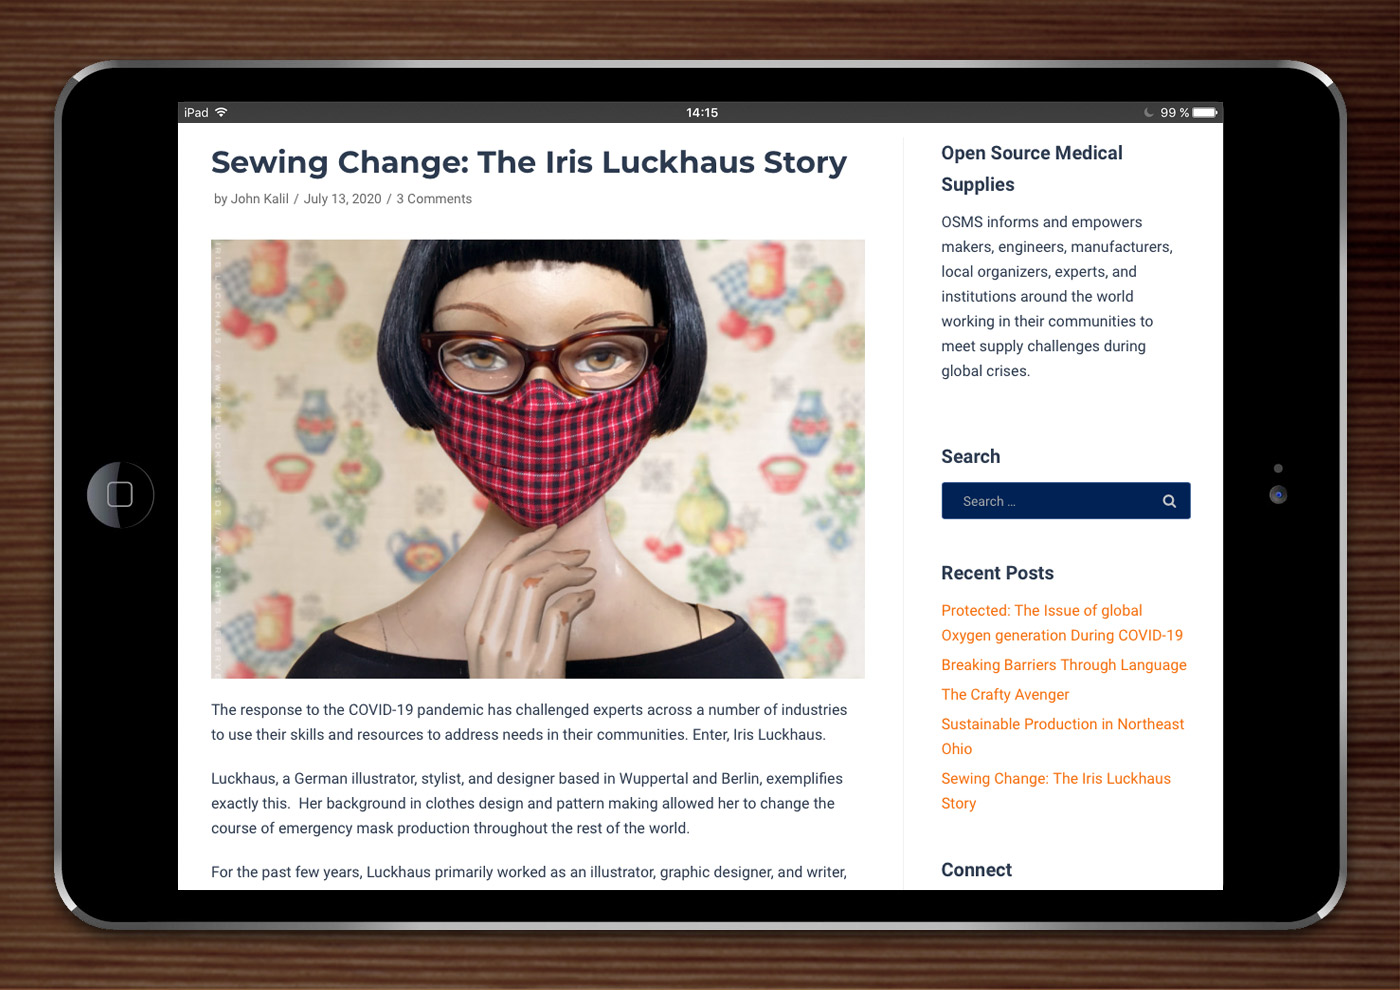 Open Source Medical Supplies: Sewing Change, The Iris Luckhaus Story